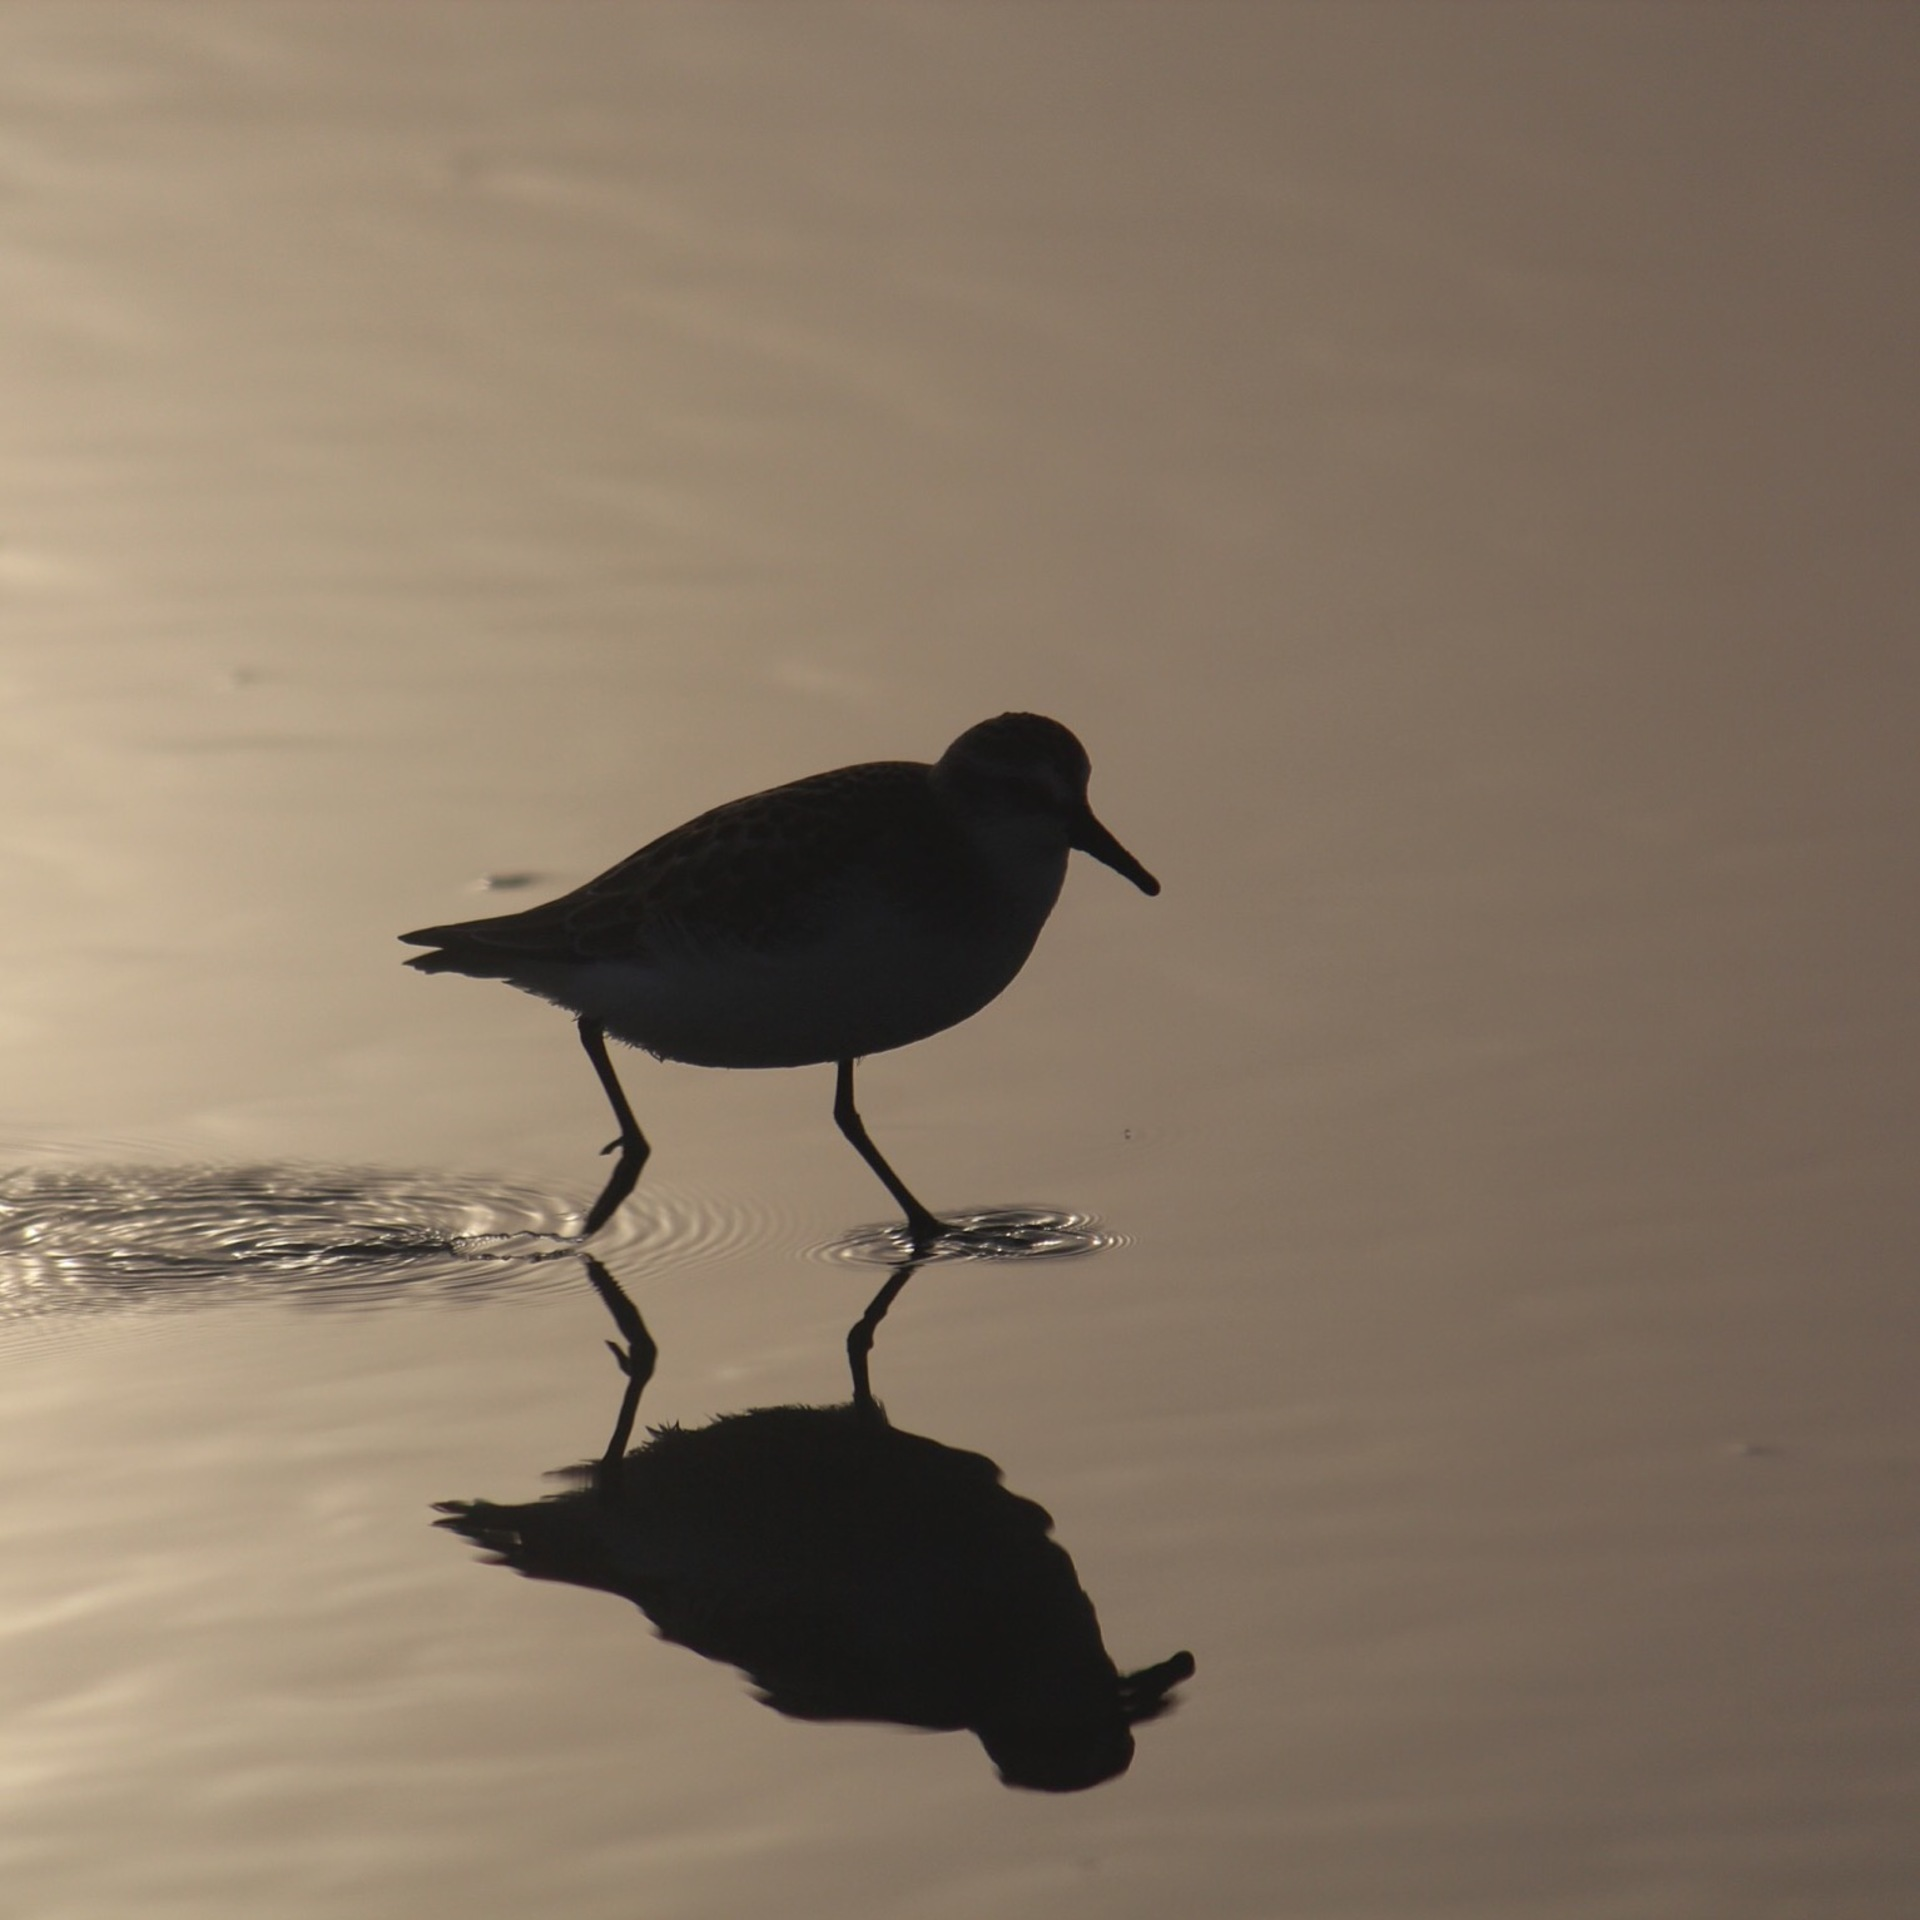 Silhouettes and shadows example photo